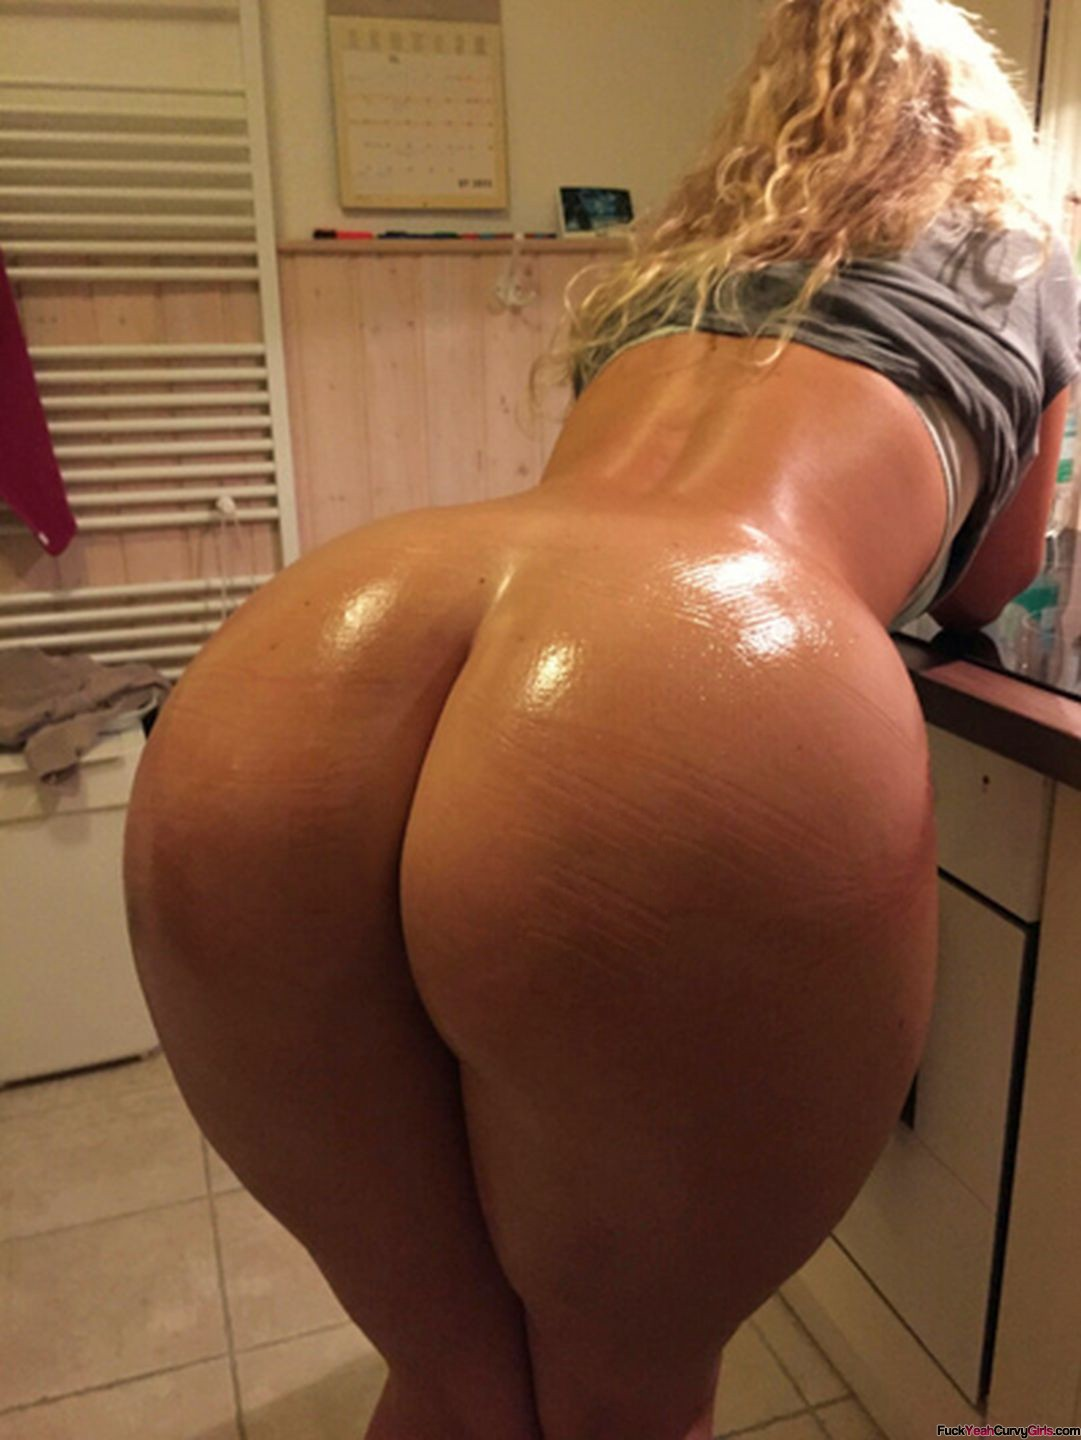 Sorry, Sexy hip pawg nude from behind words... super